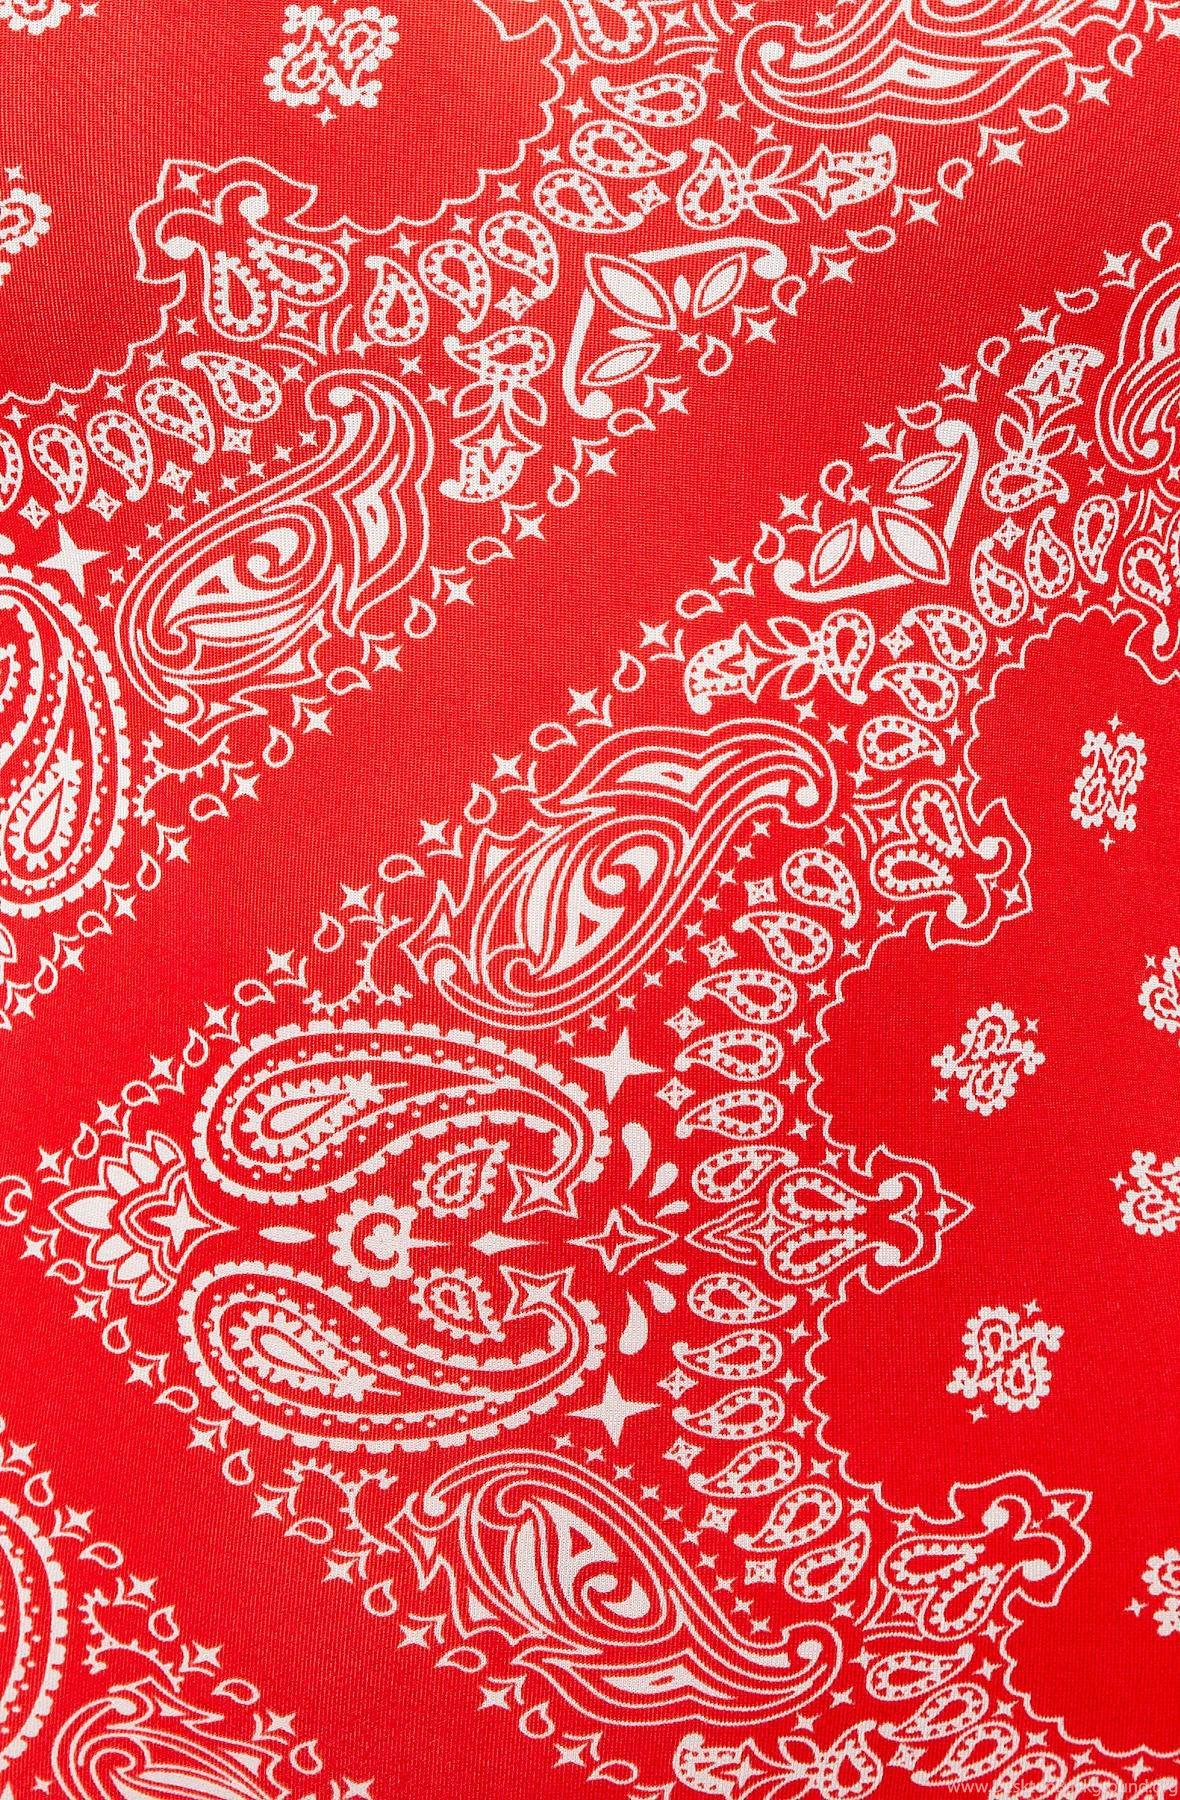 Red Bandana Wallpapers 42933 Images Top Print Clip Art For Pinterest